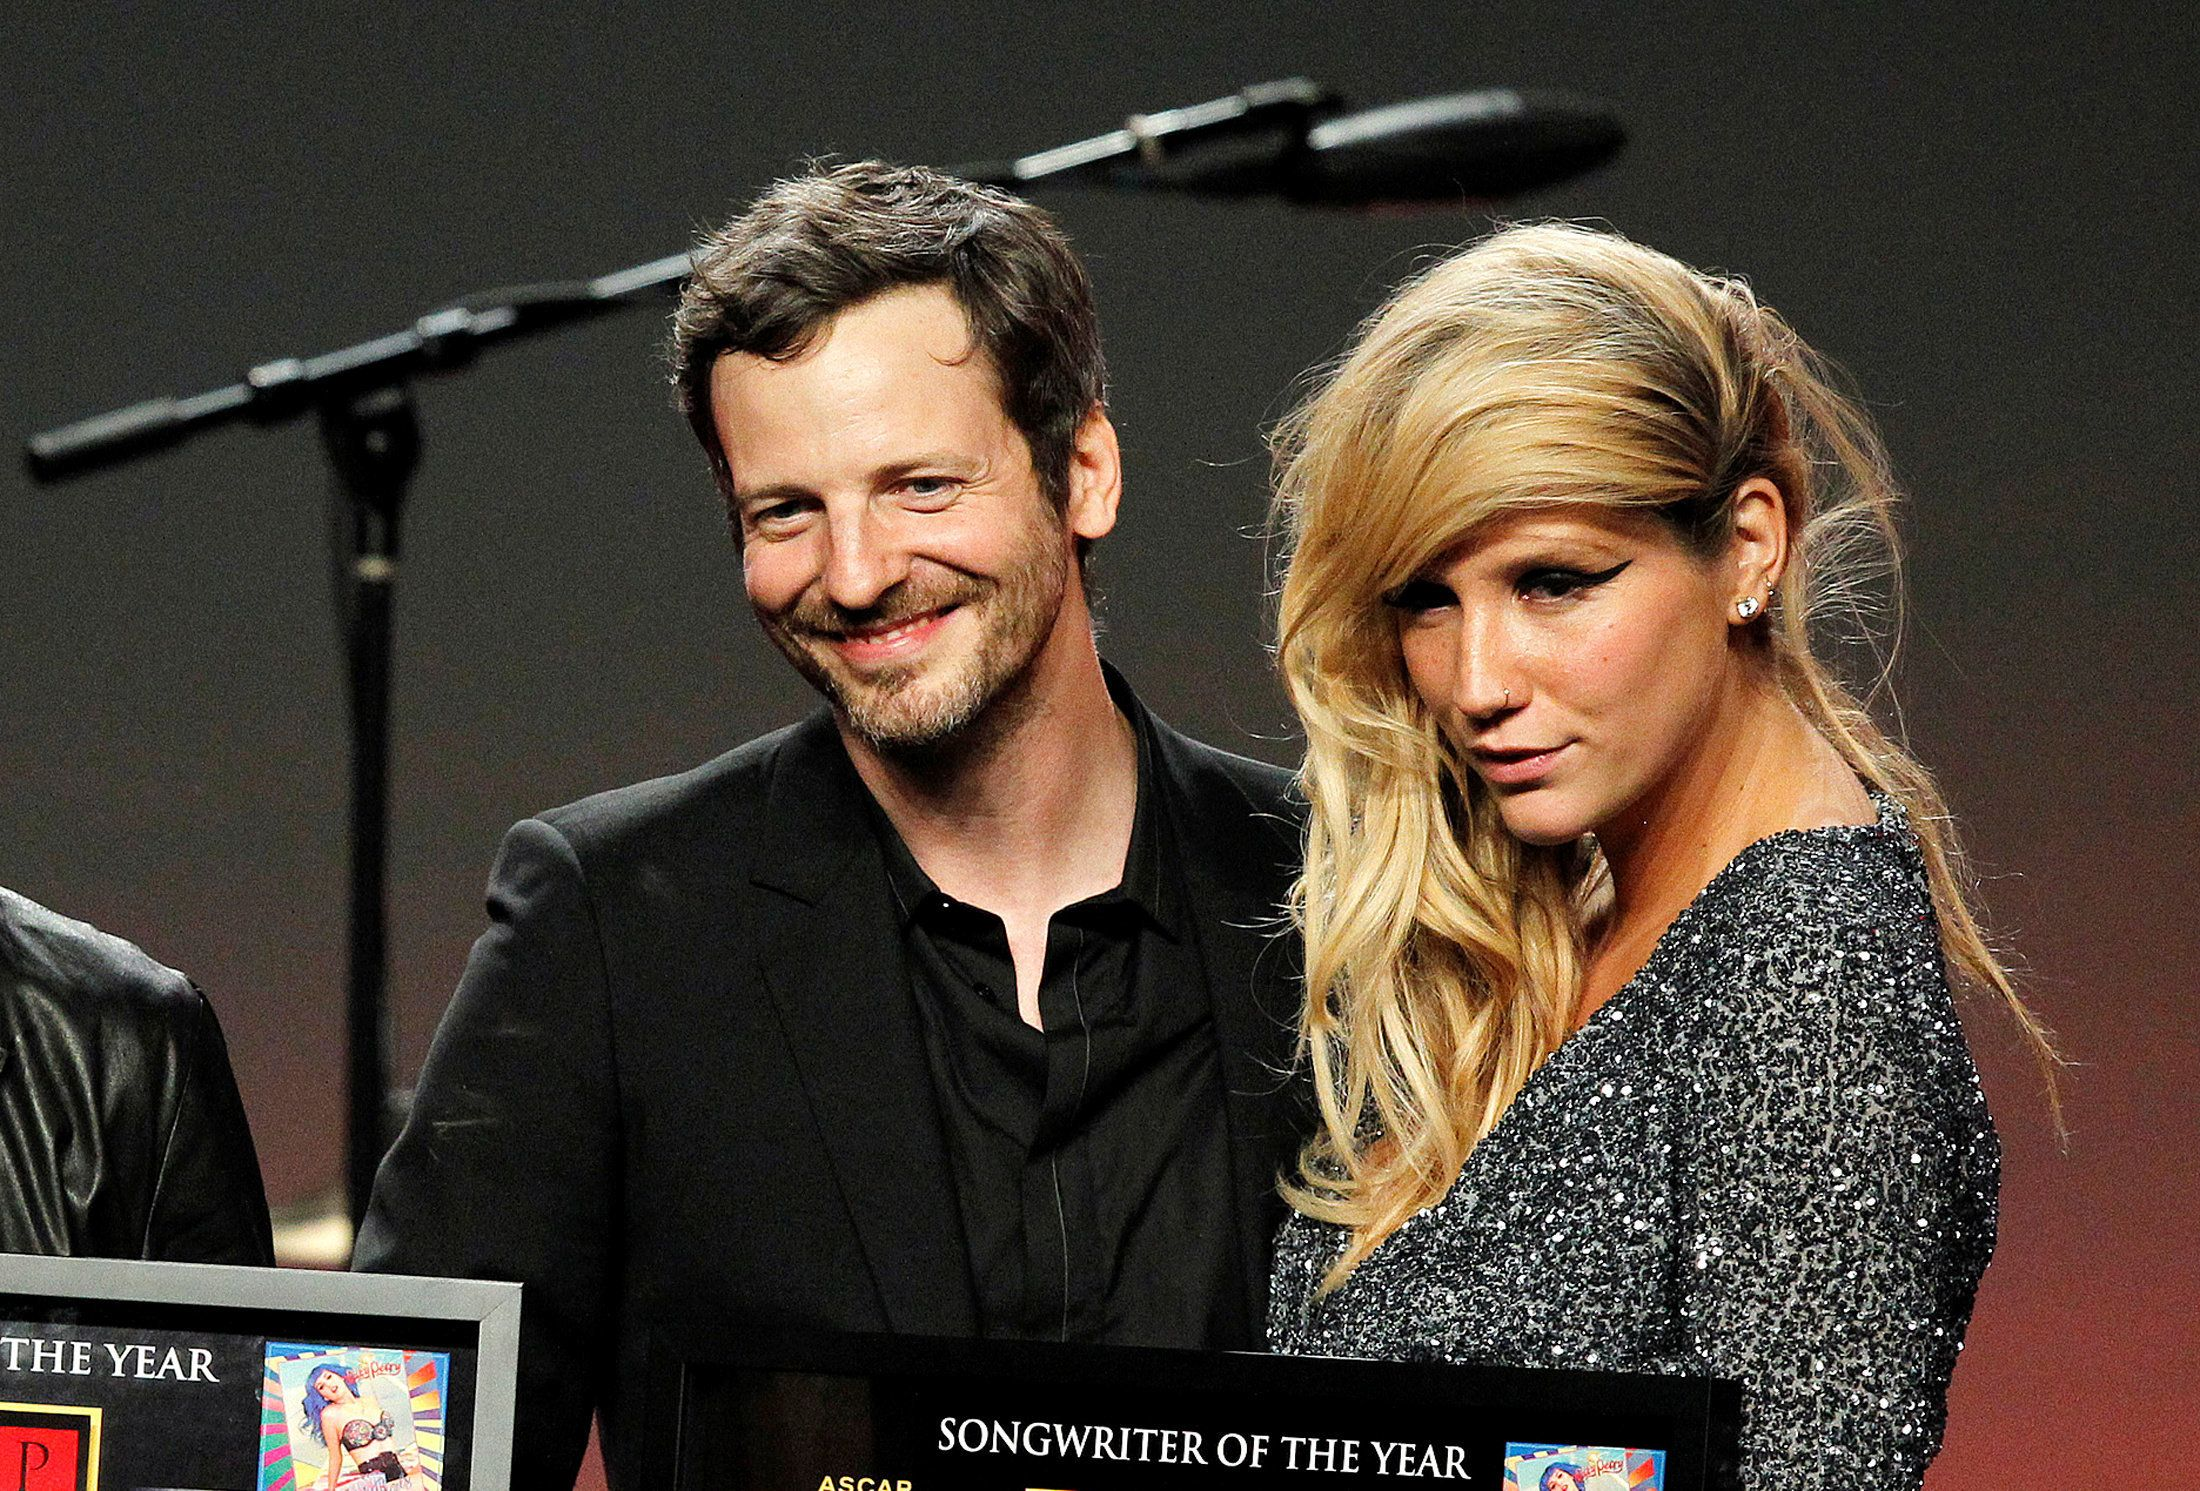 FILE PHOTO - Songwriter Lukasz Gottwald (L), better known as Dr. Luke, accept the Songwriter of the Year award from presenters Adam Lambert (not shown) and Kesha (R) at the 28th annual ASCAP (American Society of Composers, Authors and Publishers) Pop Music Awards in Hollywood, California, U.S. on April 27, 2011.  REUTERS/Mario Anzuoni/File Photo